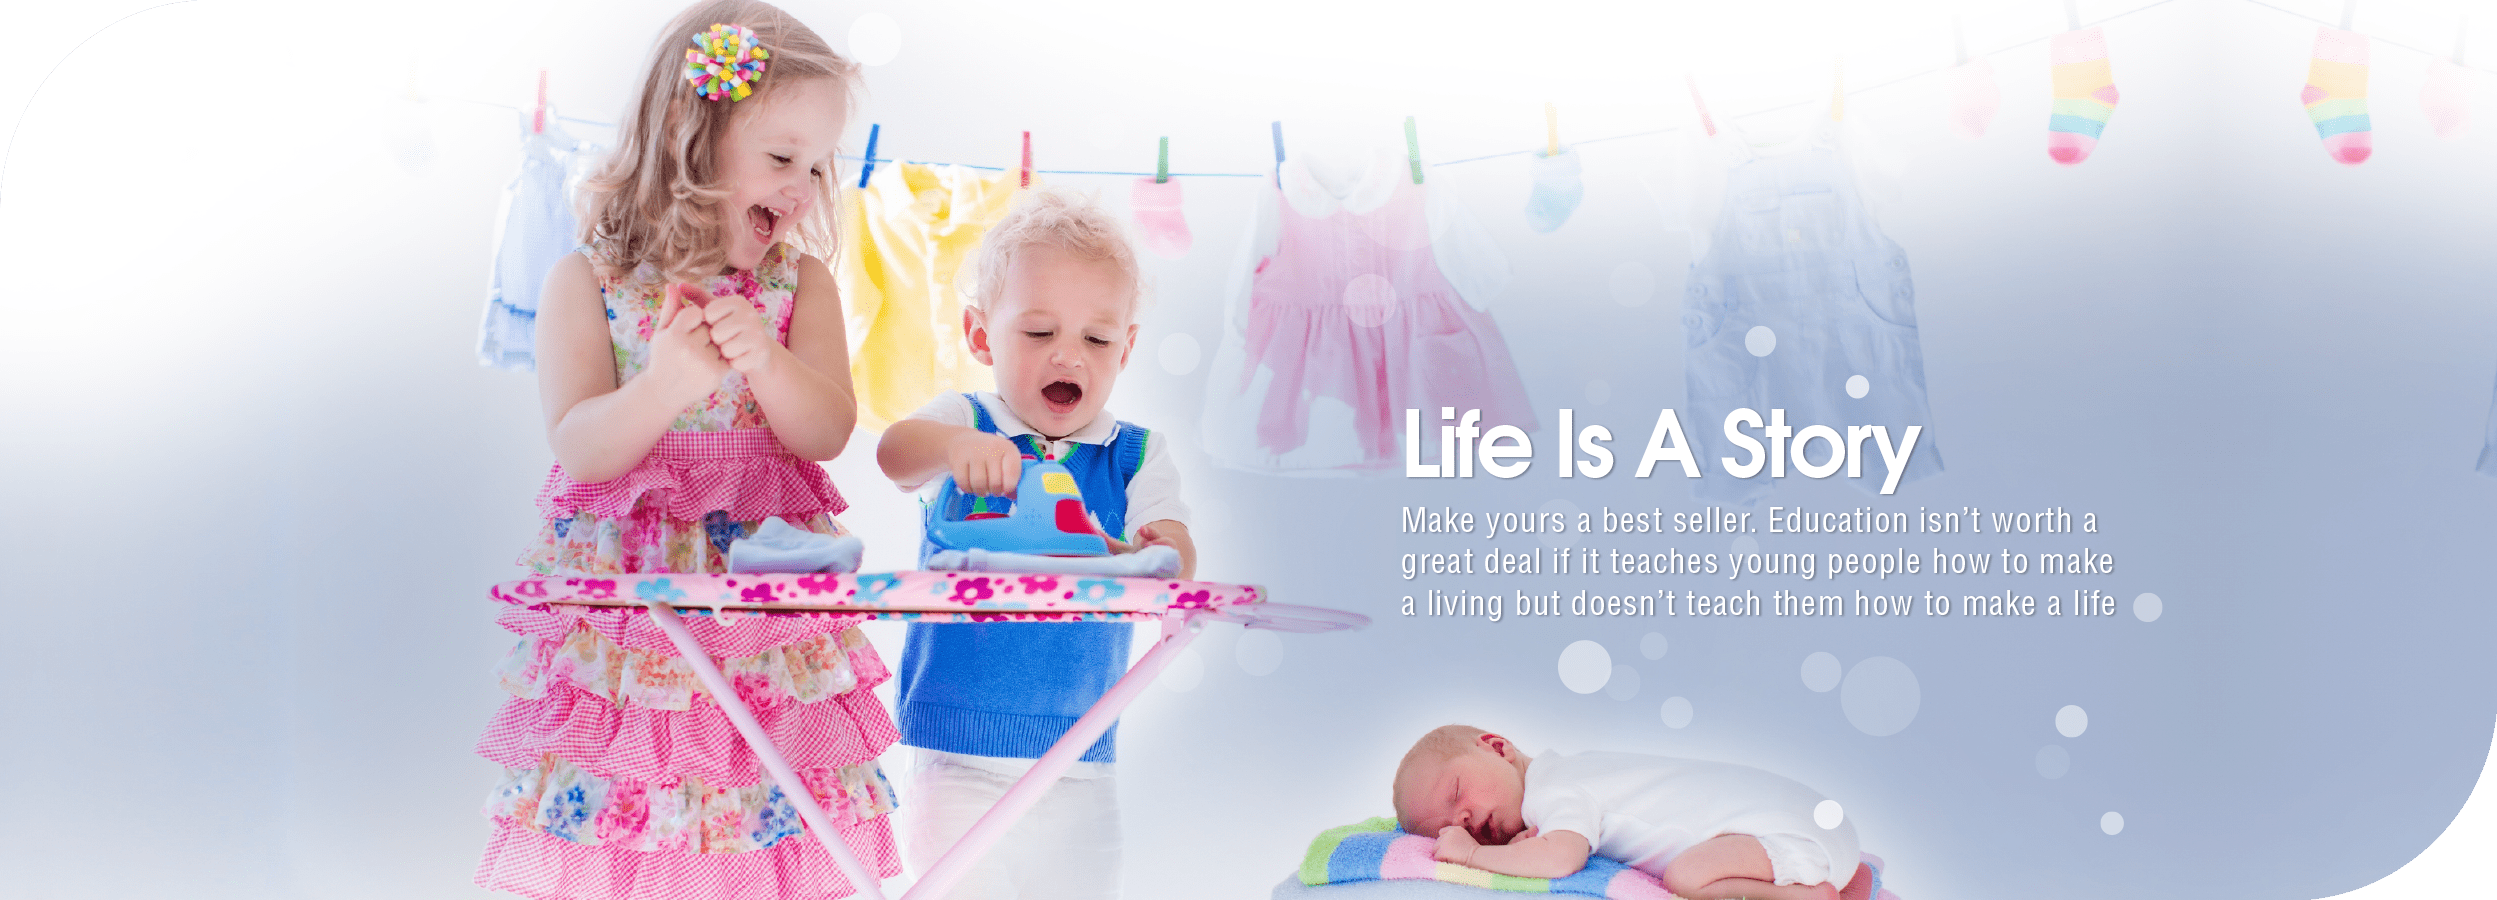 the-junior-academy-infant-programs-kids-education-montkiara